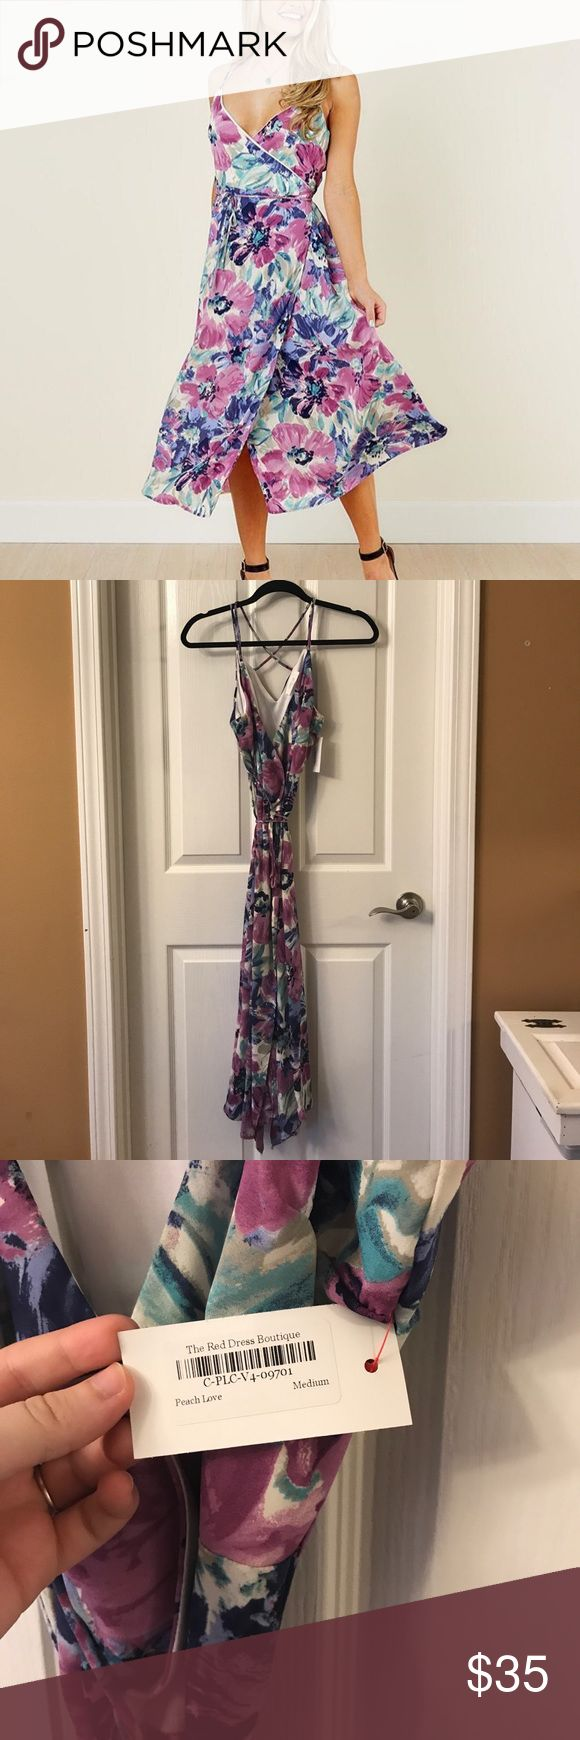 Red Dress Boutique Floral Maxi Dress Purple and blue floral wrap maxi. Brand is Peach Love California. Size medium. New with tags. Never worn. The Red Dress Boutique Dresses Maxi